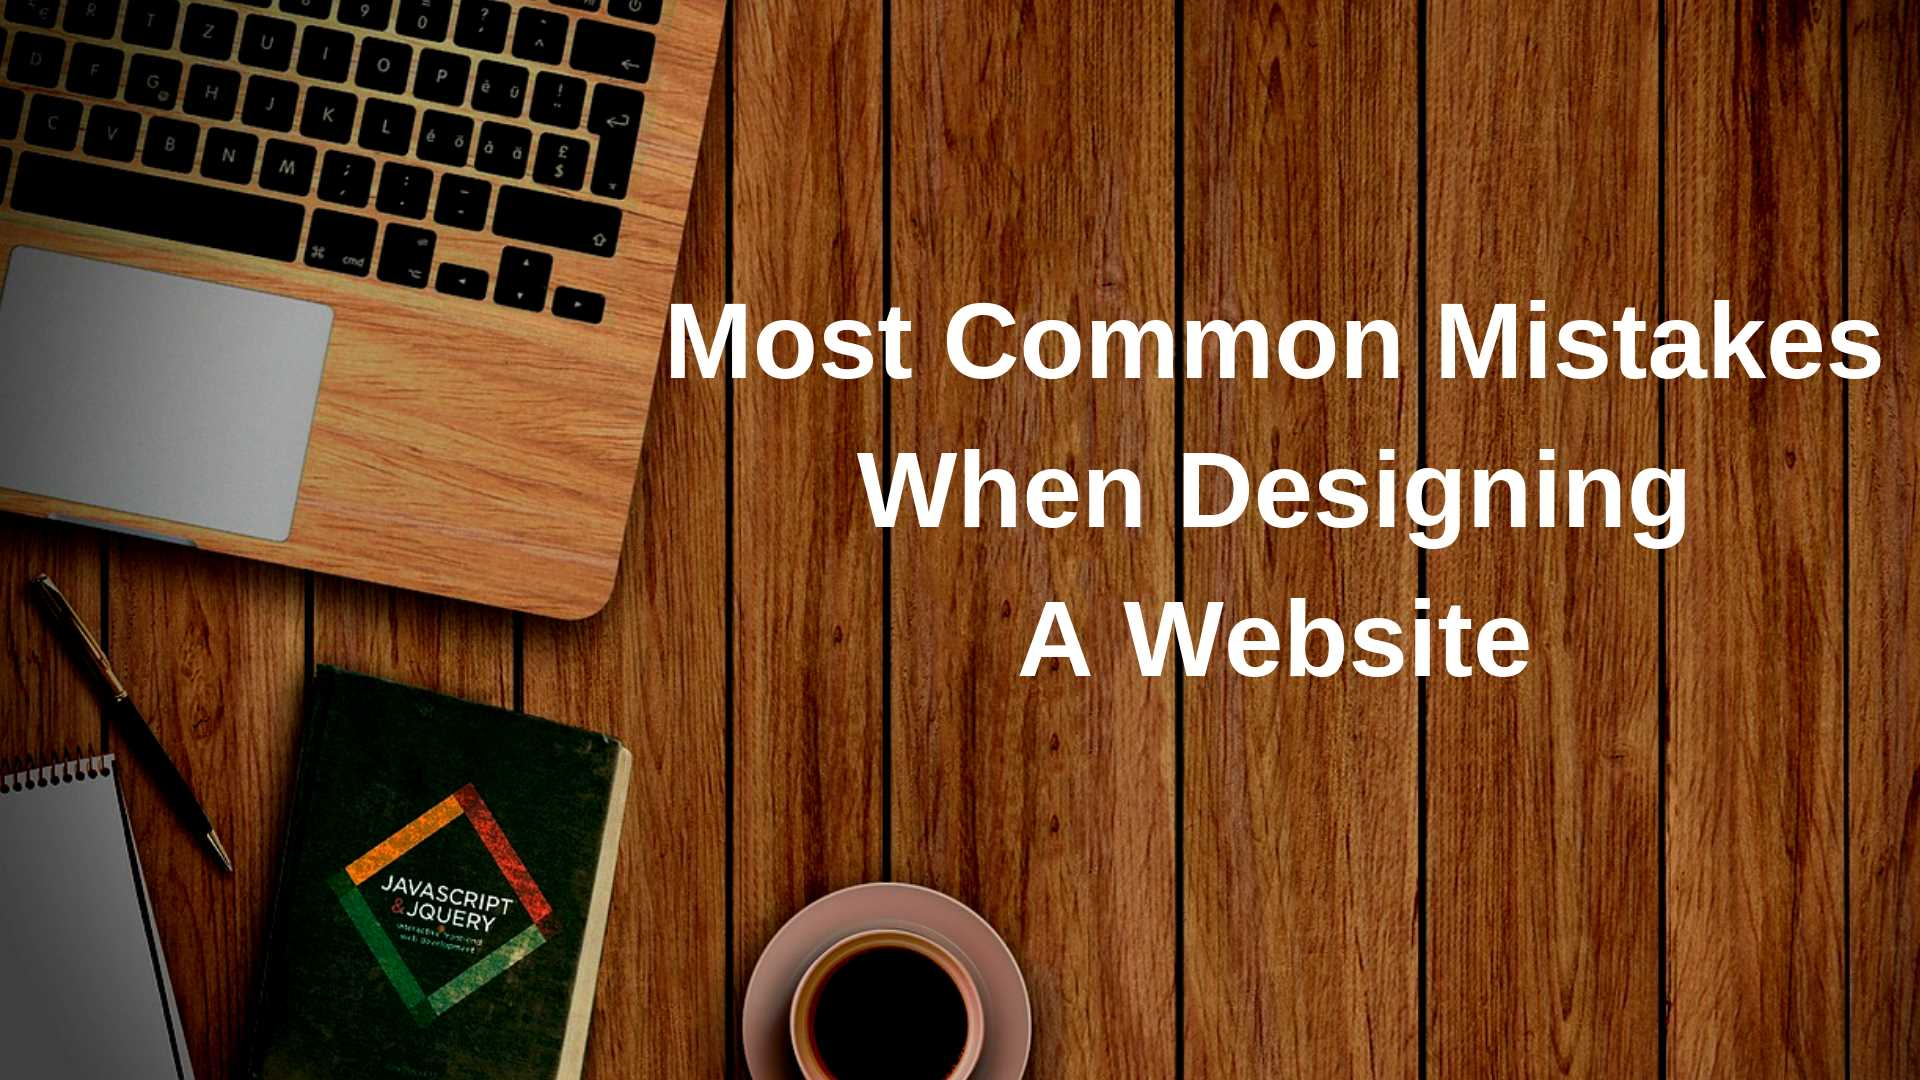 Most Common Mistakes When Designing A Website